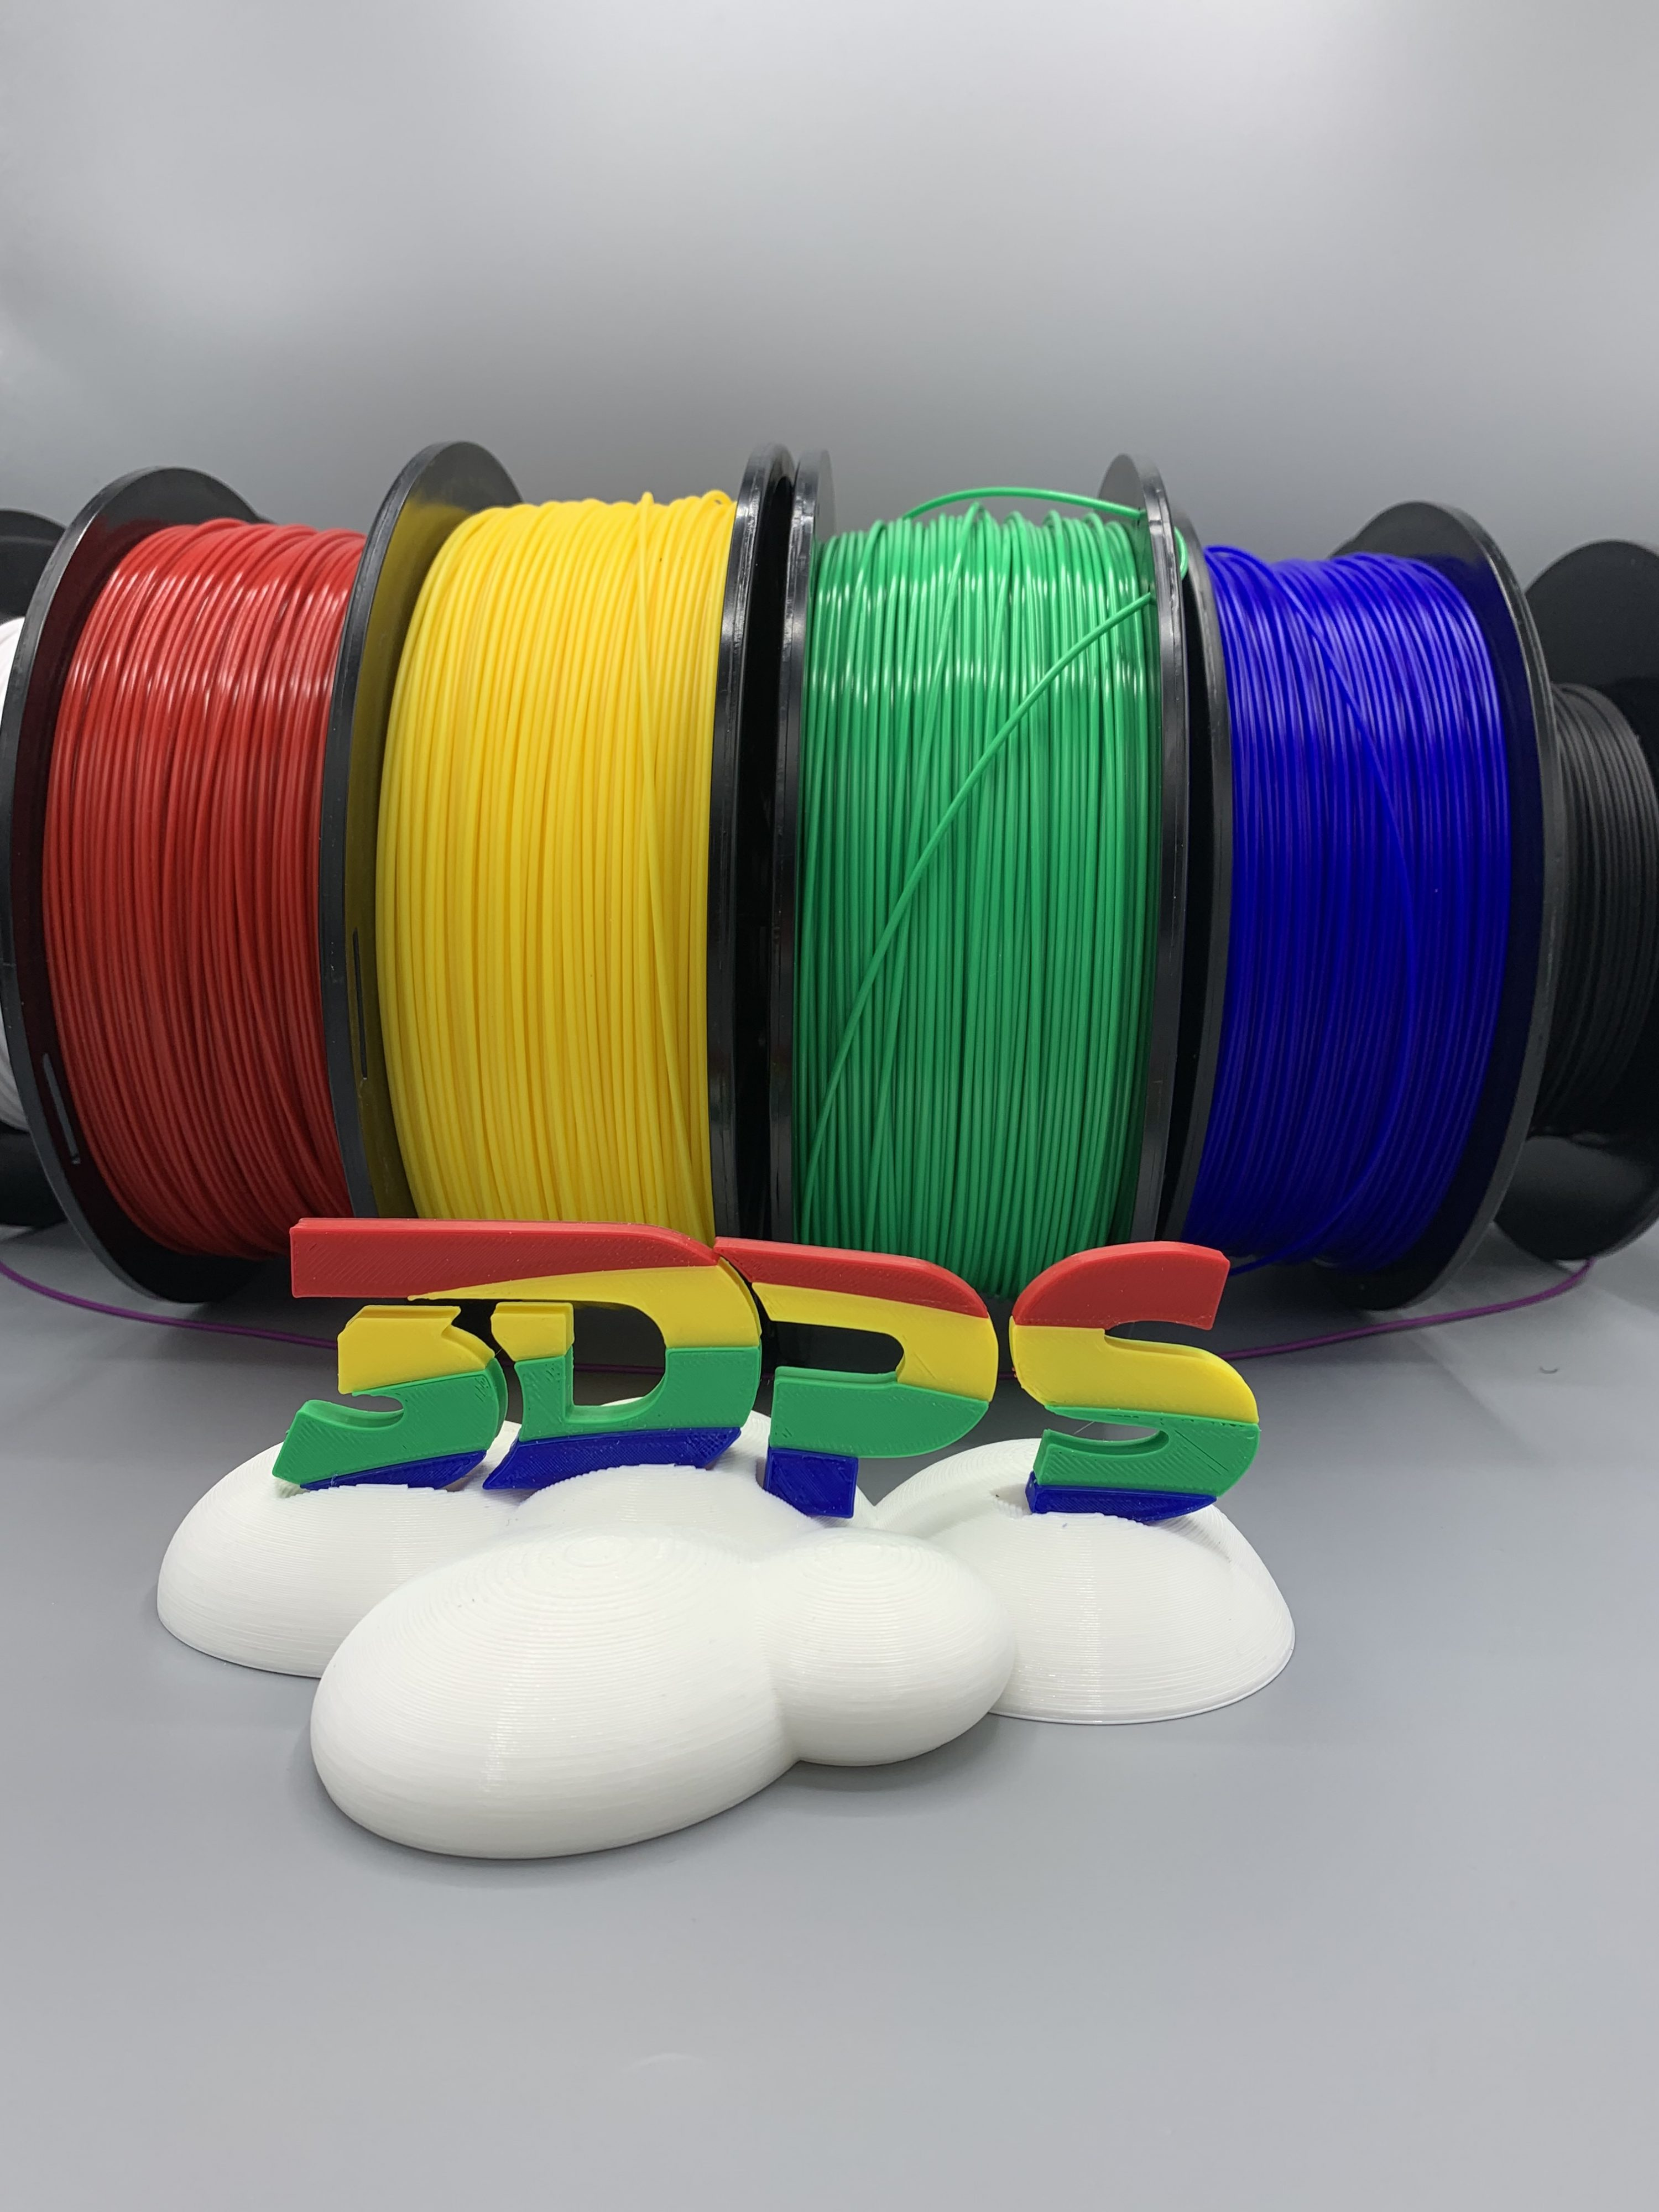 Filament: What Is It?